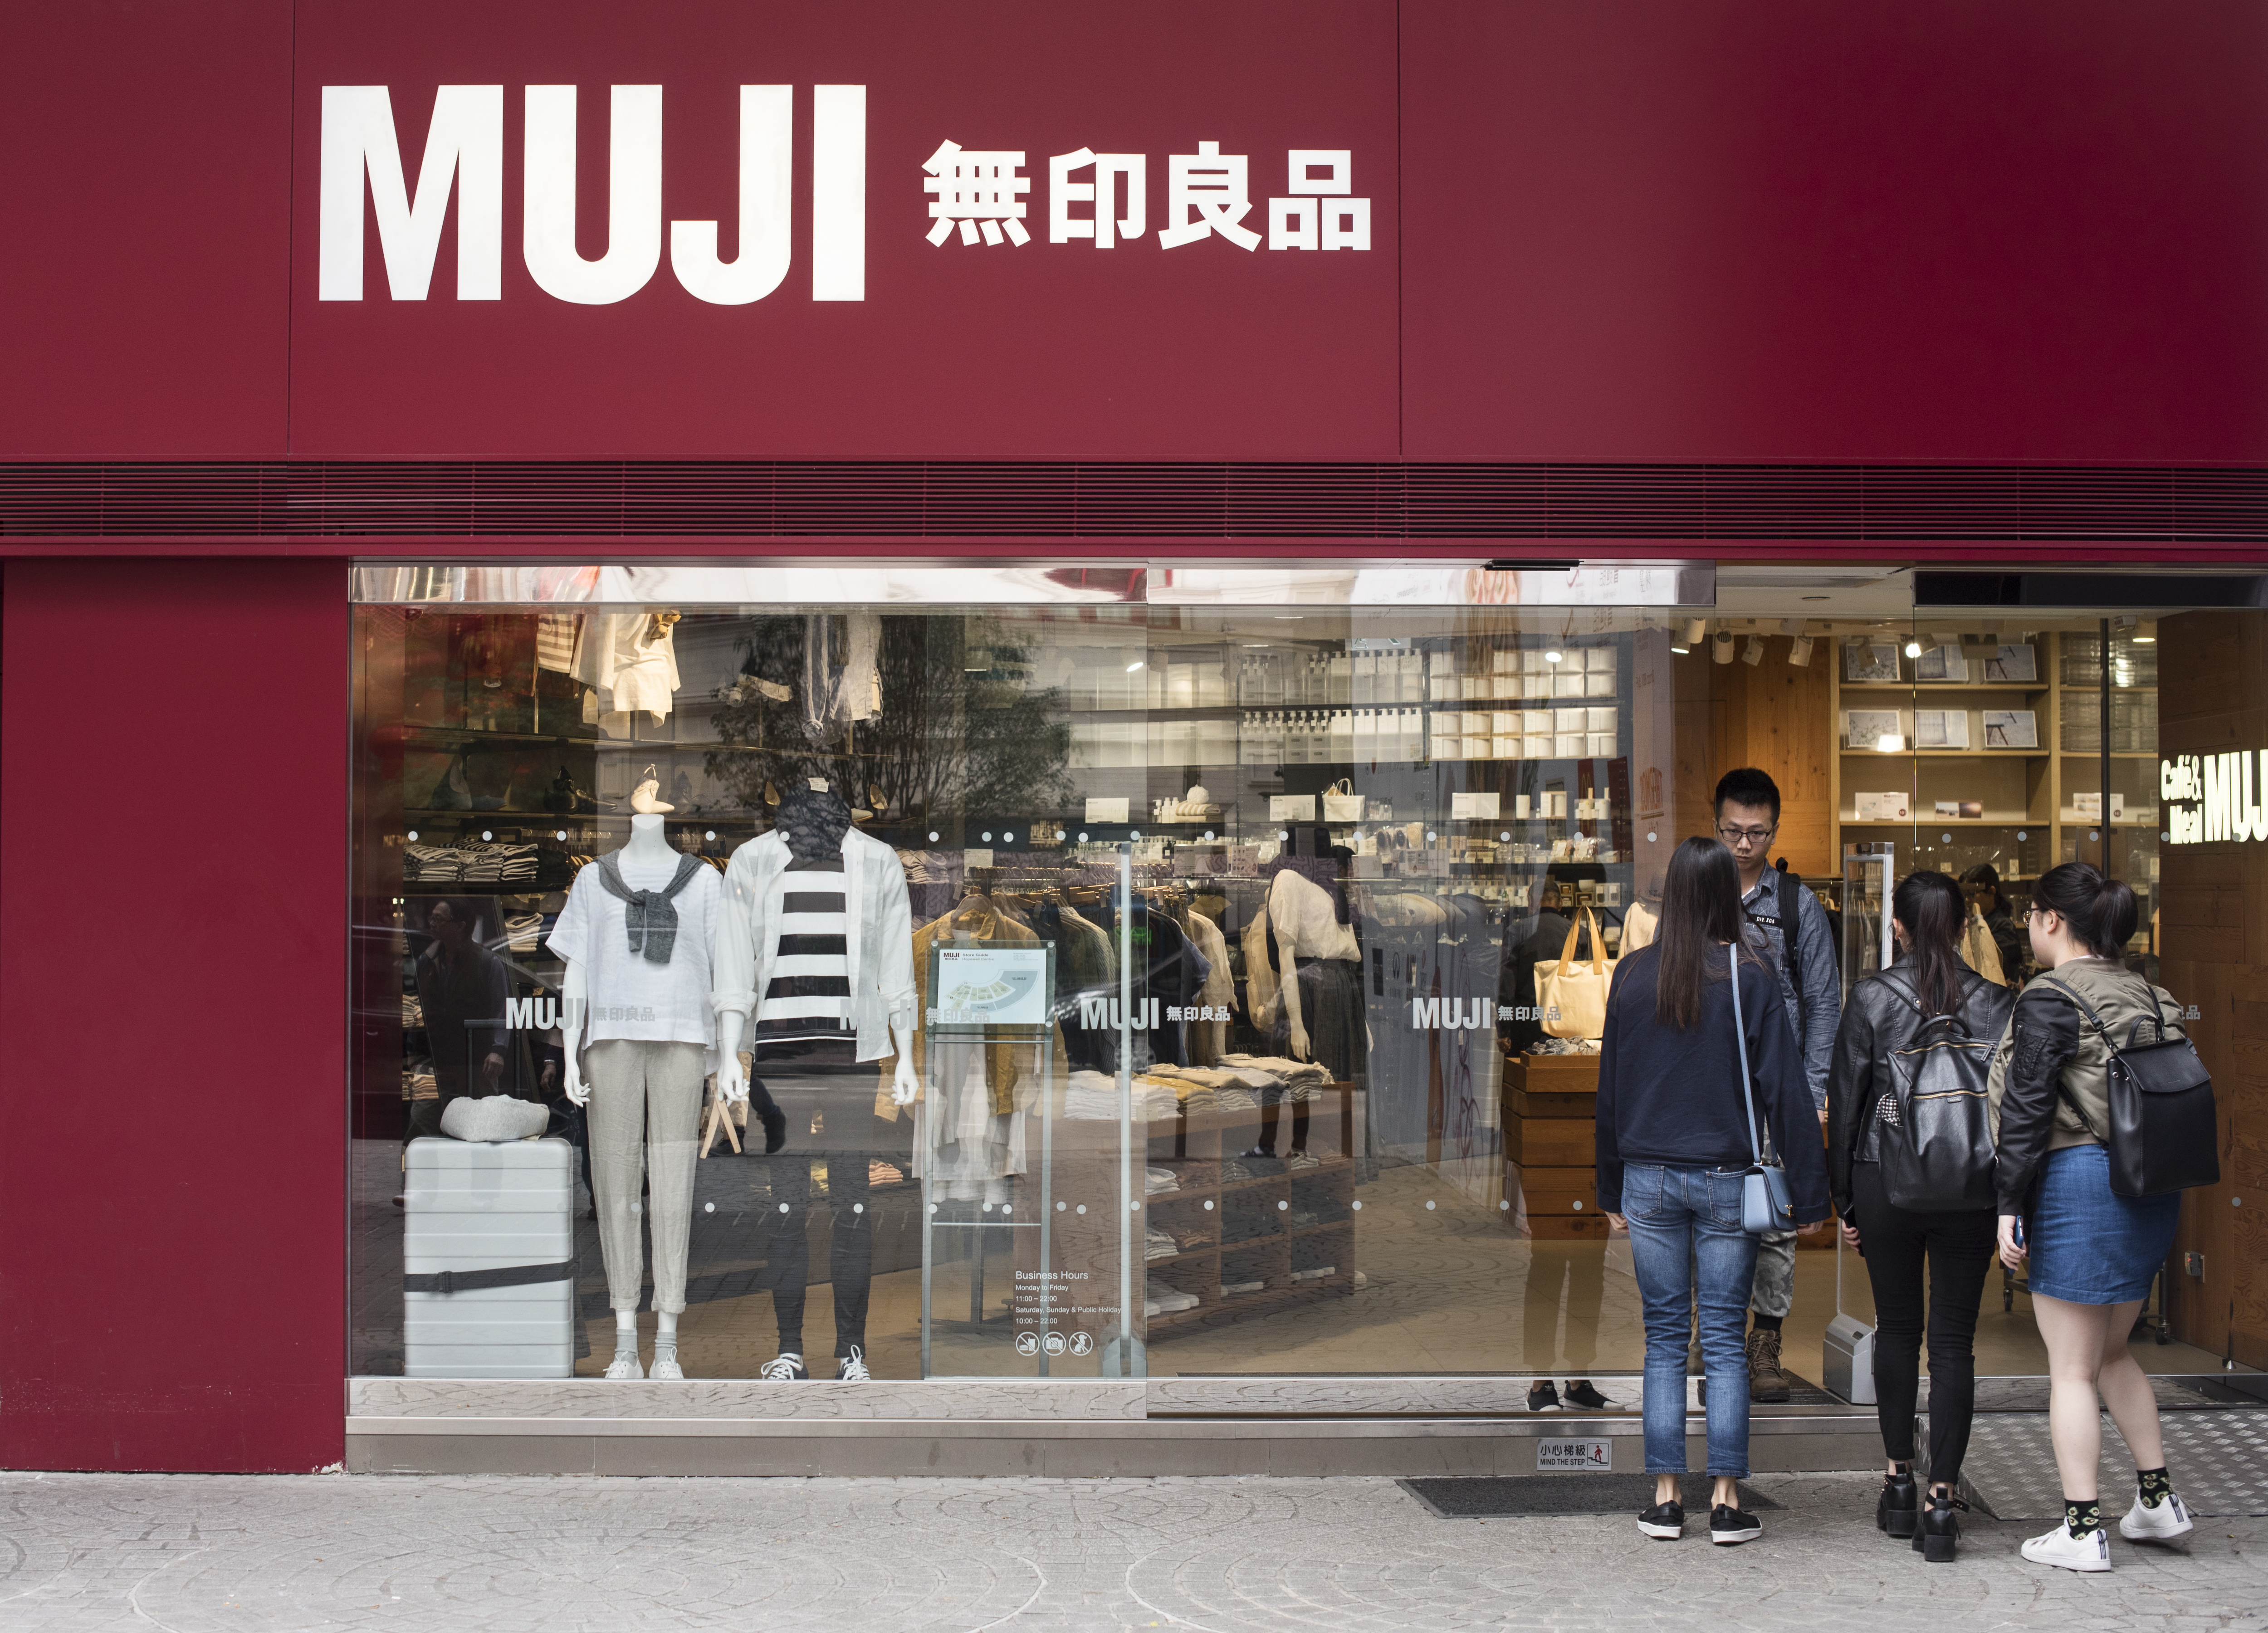 Japanese household and clothing retail company, Muji, shop